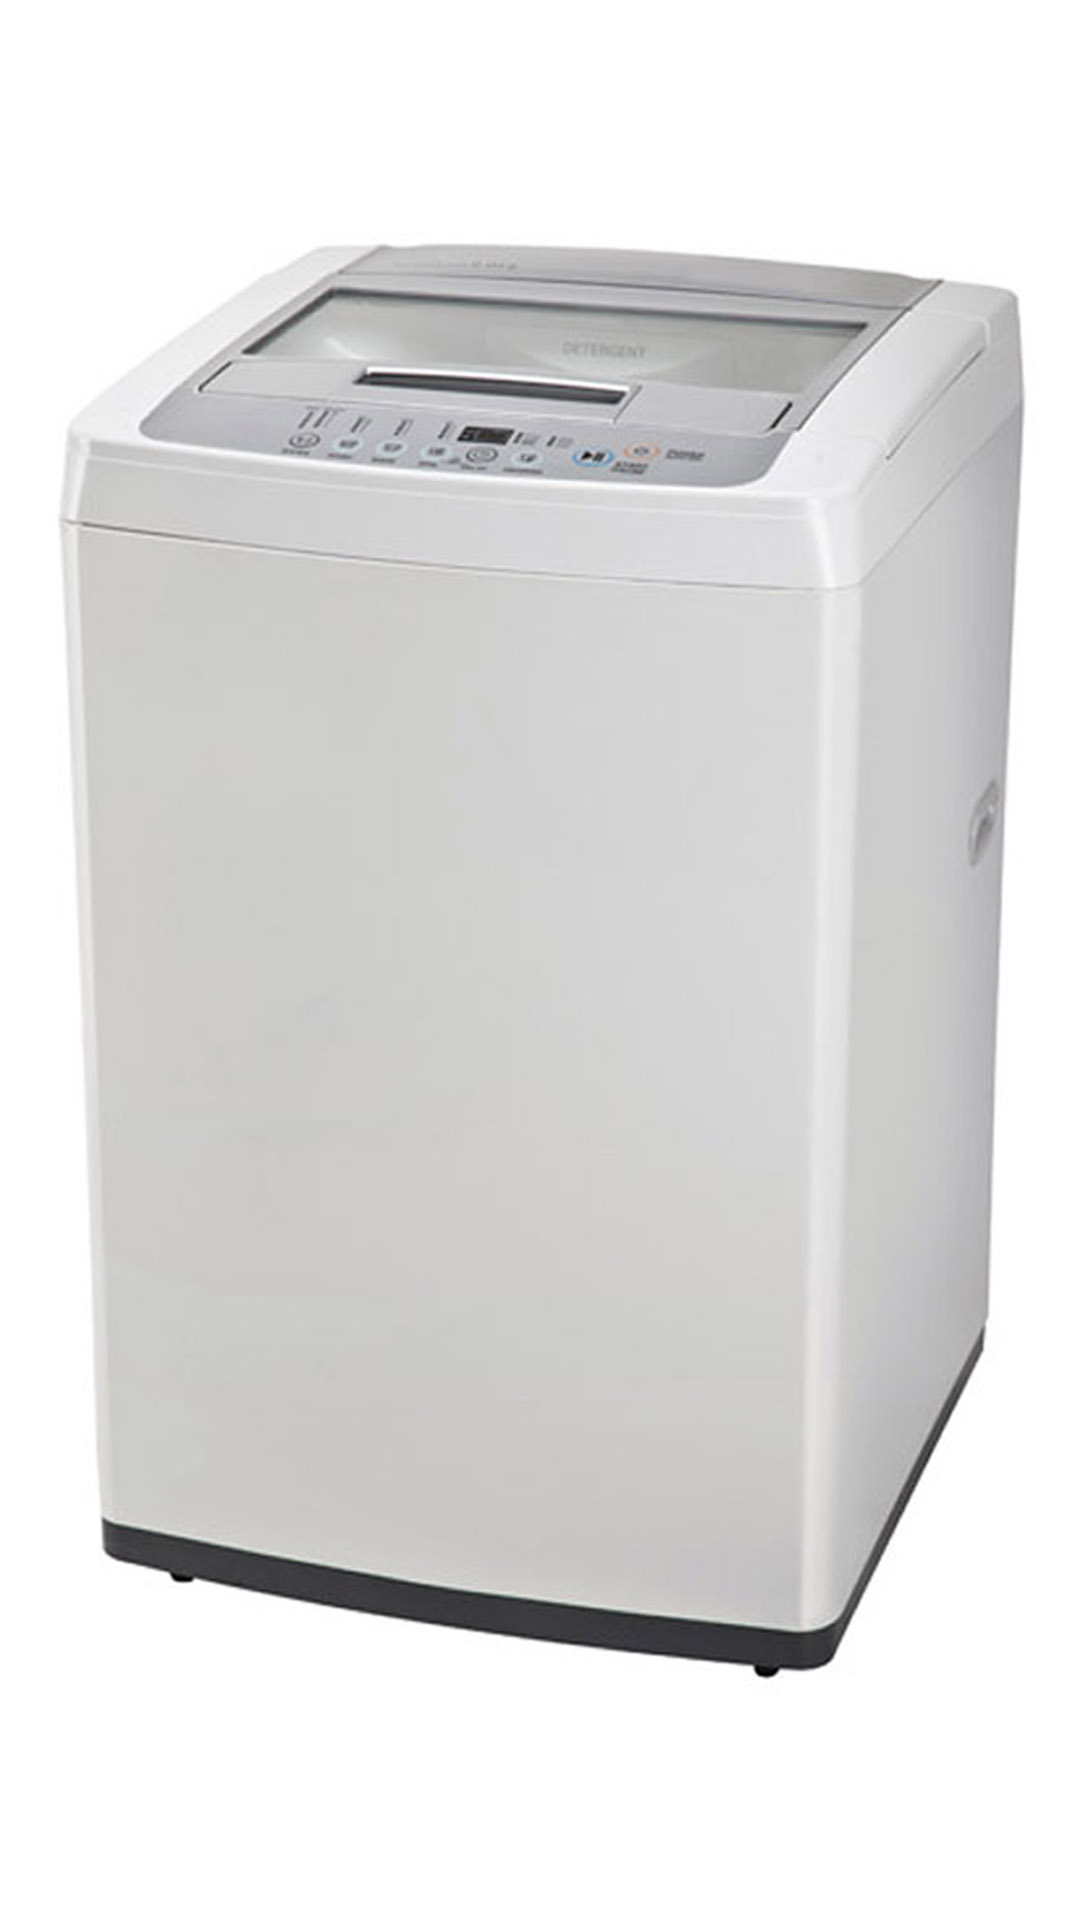 LG T7070TDDL Fully Automatic Top Loading 6 Kg Washing Machine